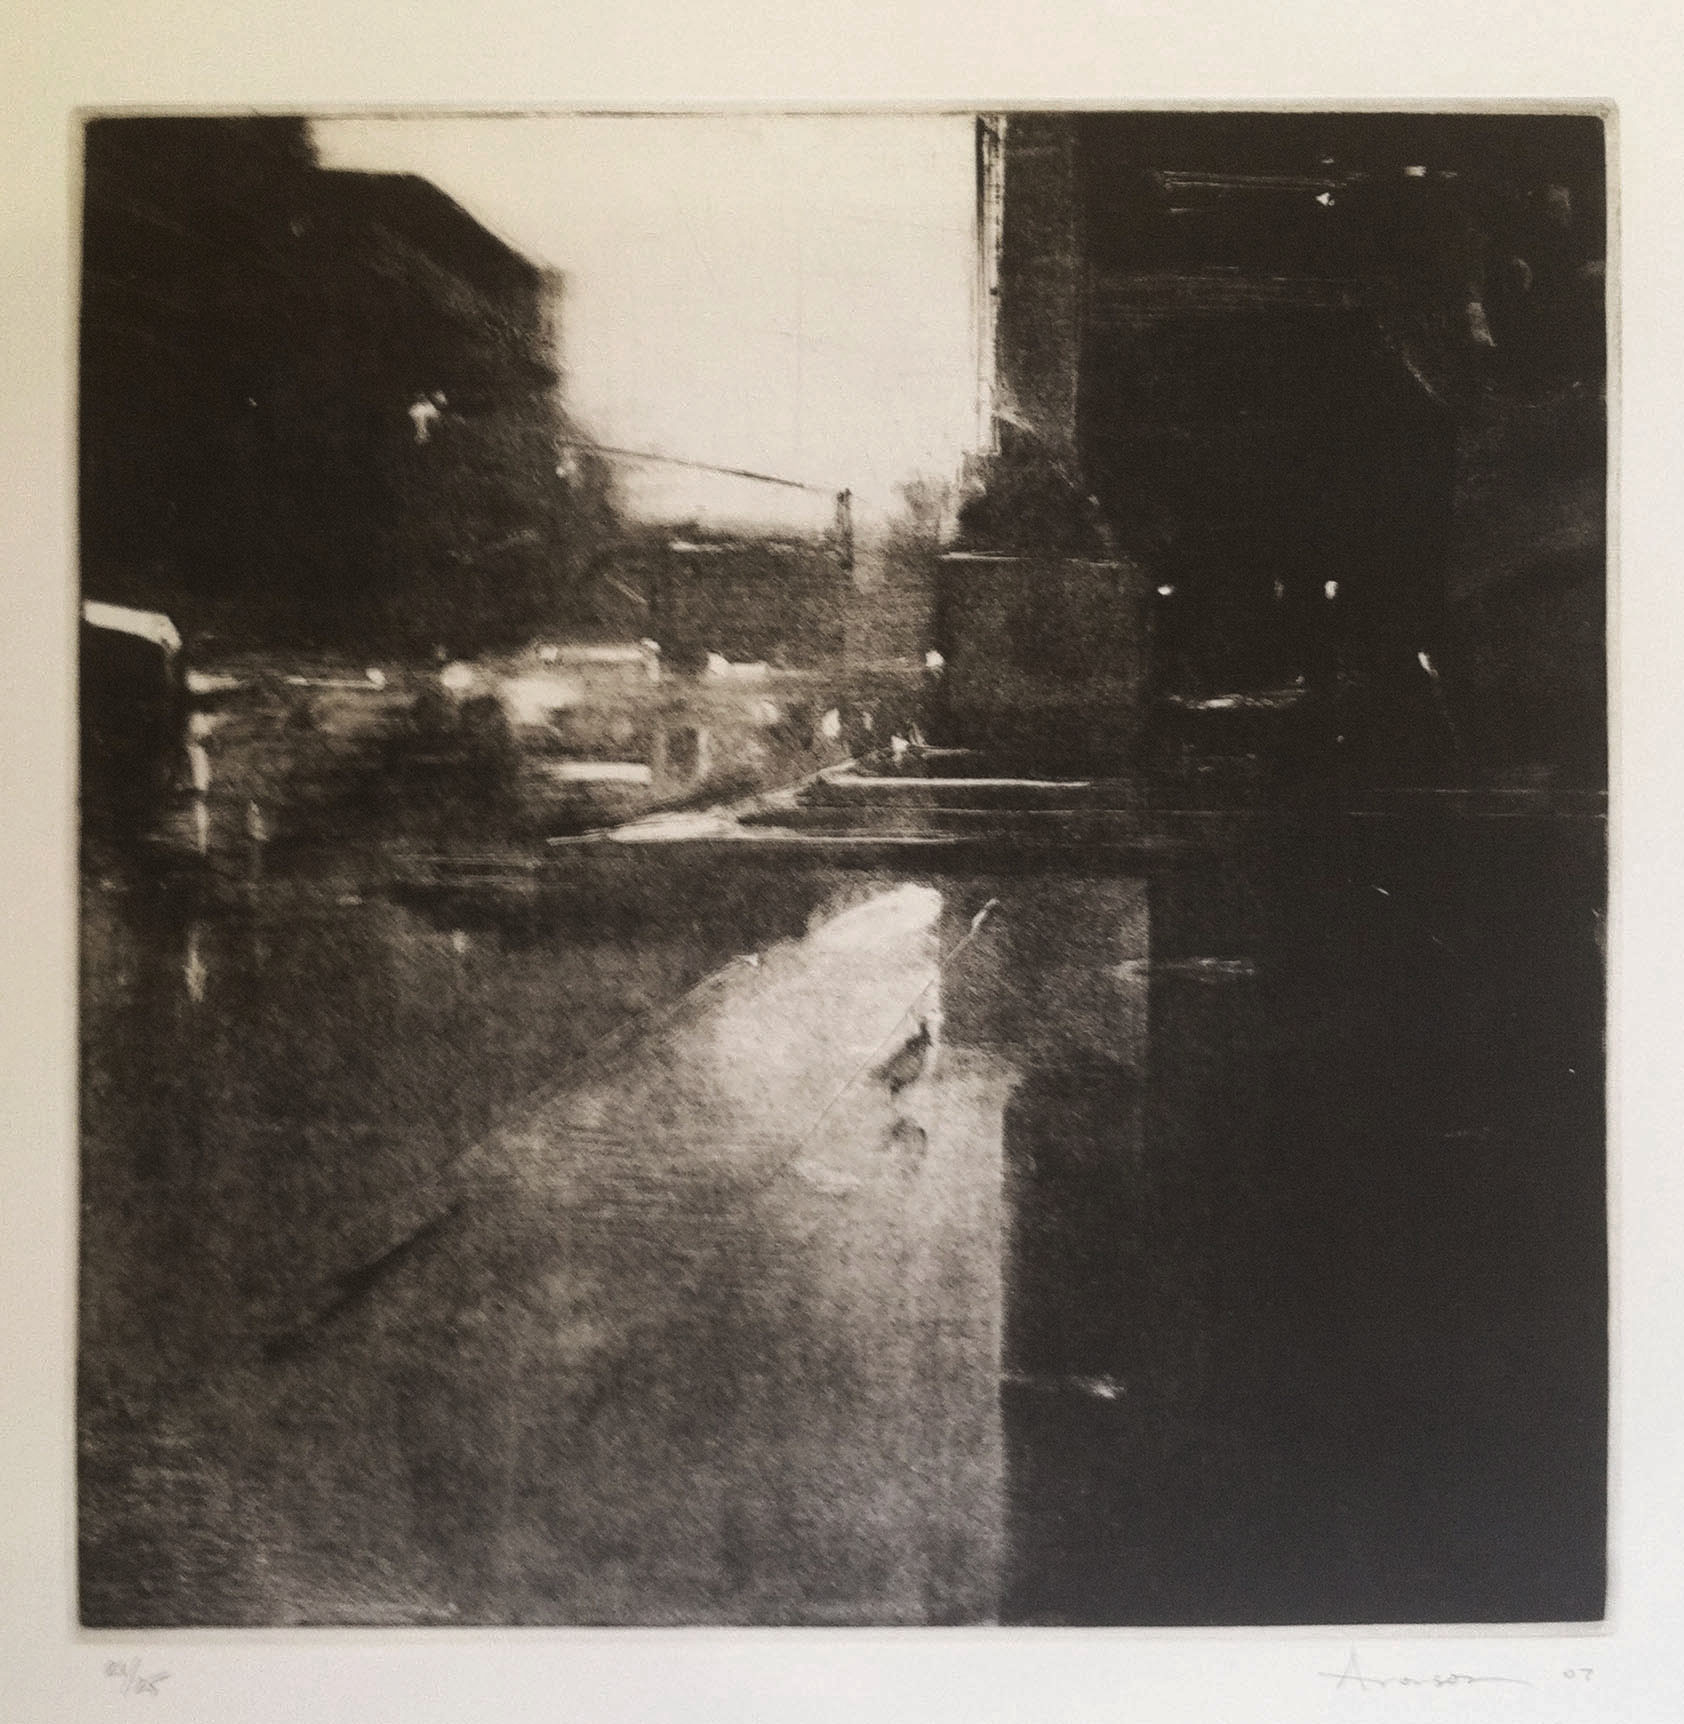 Rain, Copley Square,  2007 intaglio etching & aquatint, ed. 25 Fabriano Rosapina 12 x 12 inches (image), 28 x 19 1/2 inches (paper)